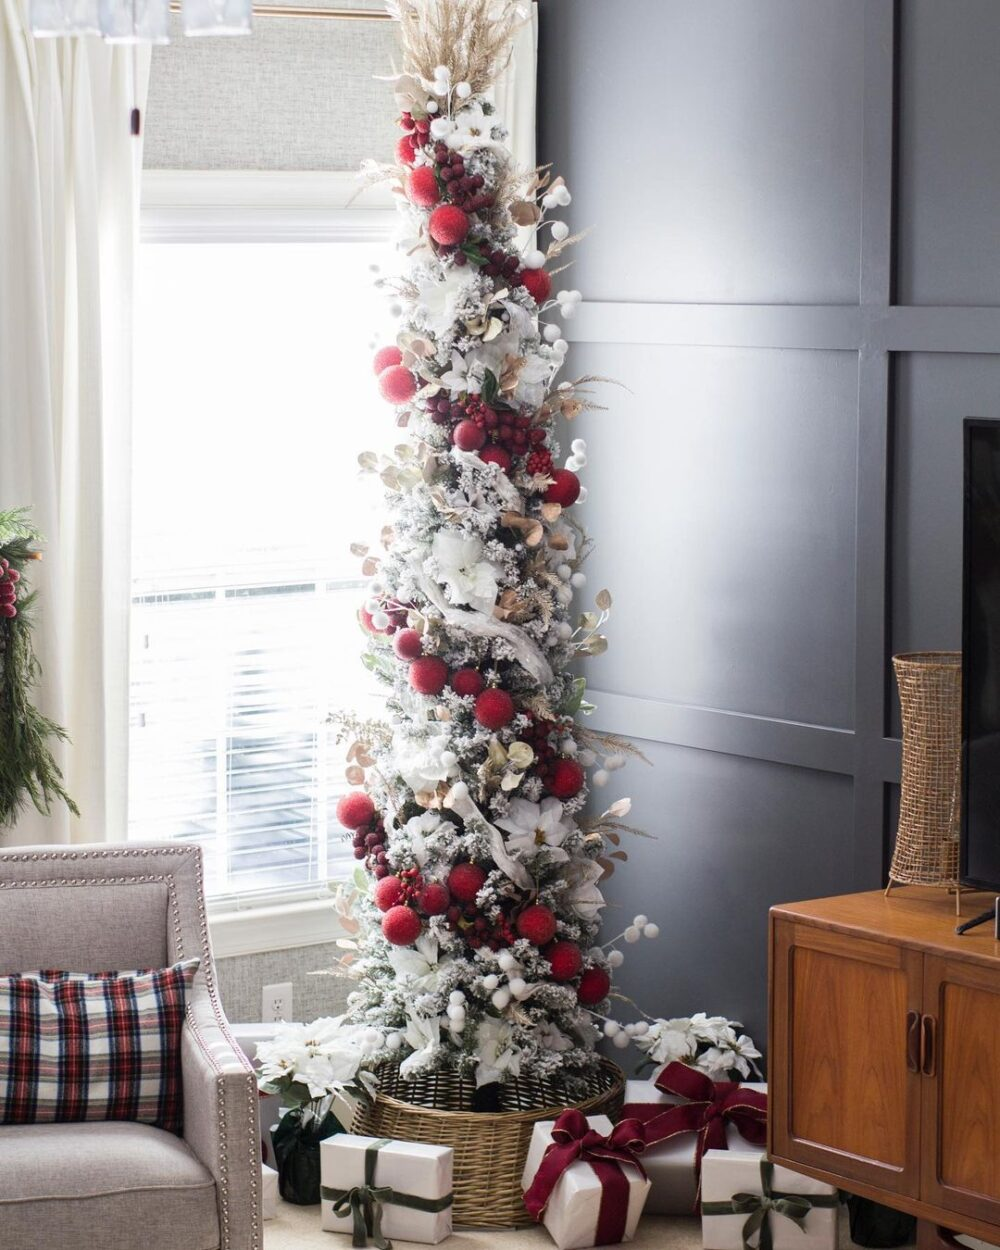 The Best Tips for Decorating a Small Space for the Holidays